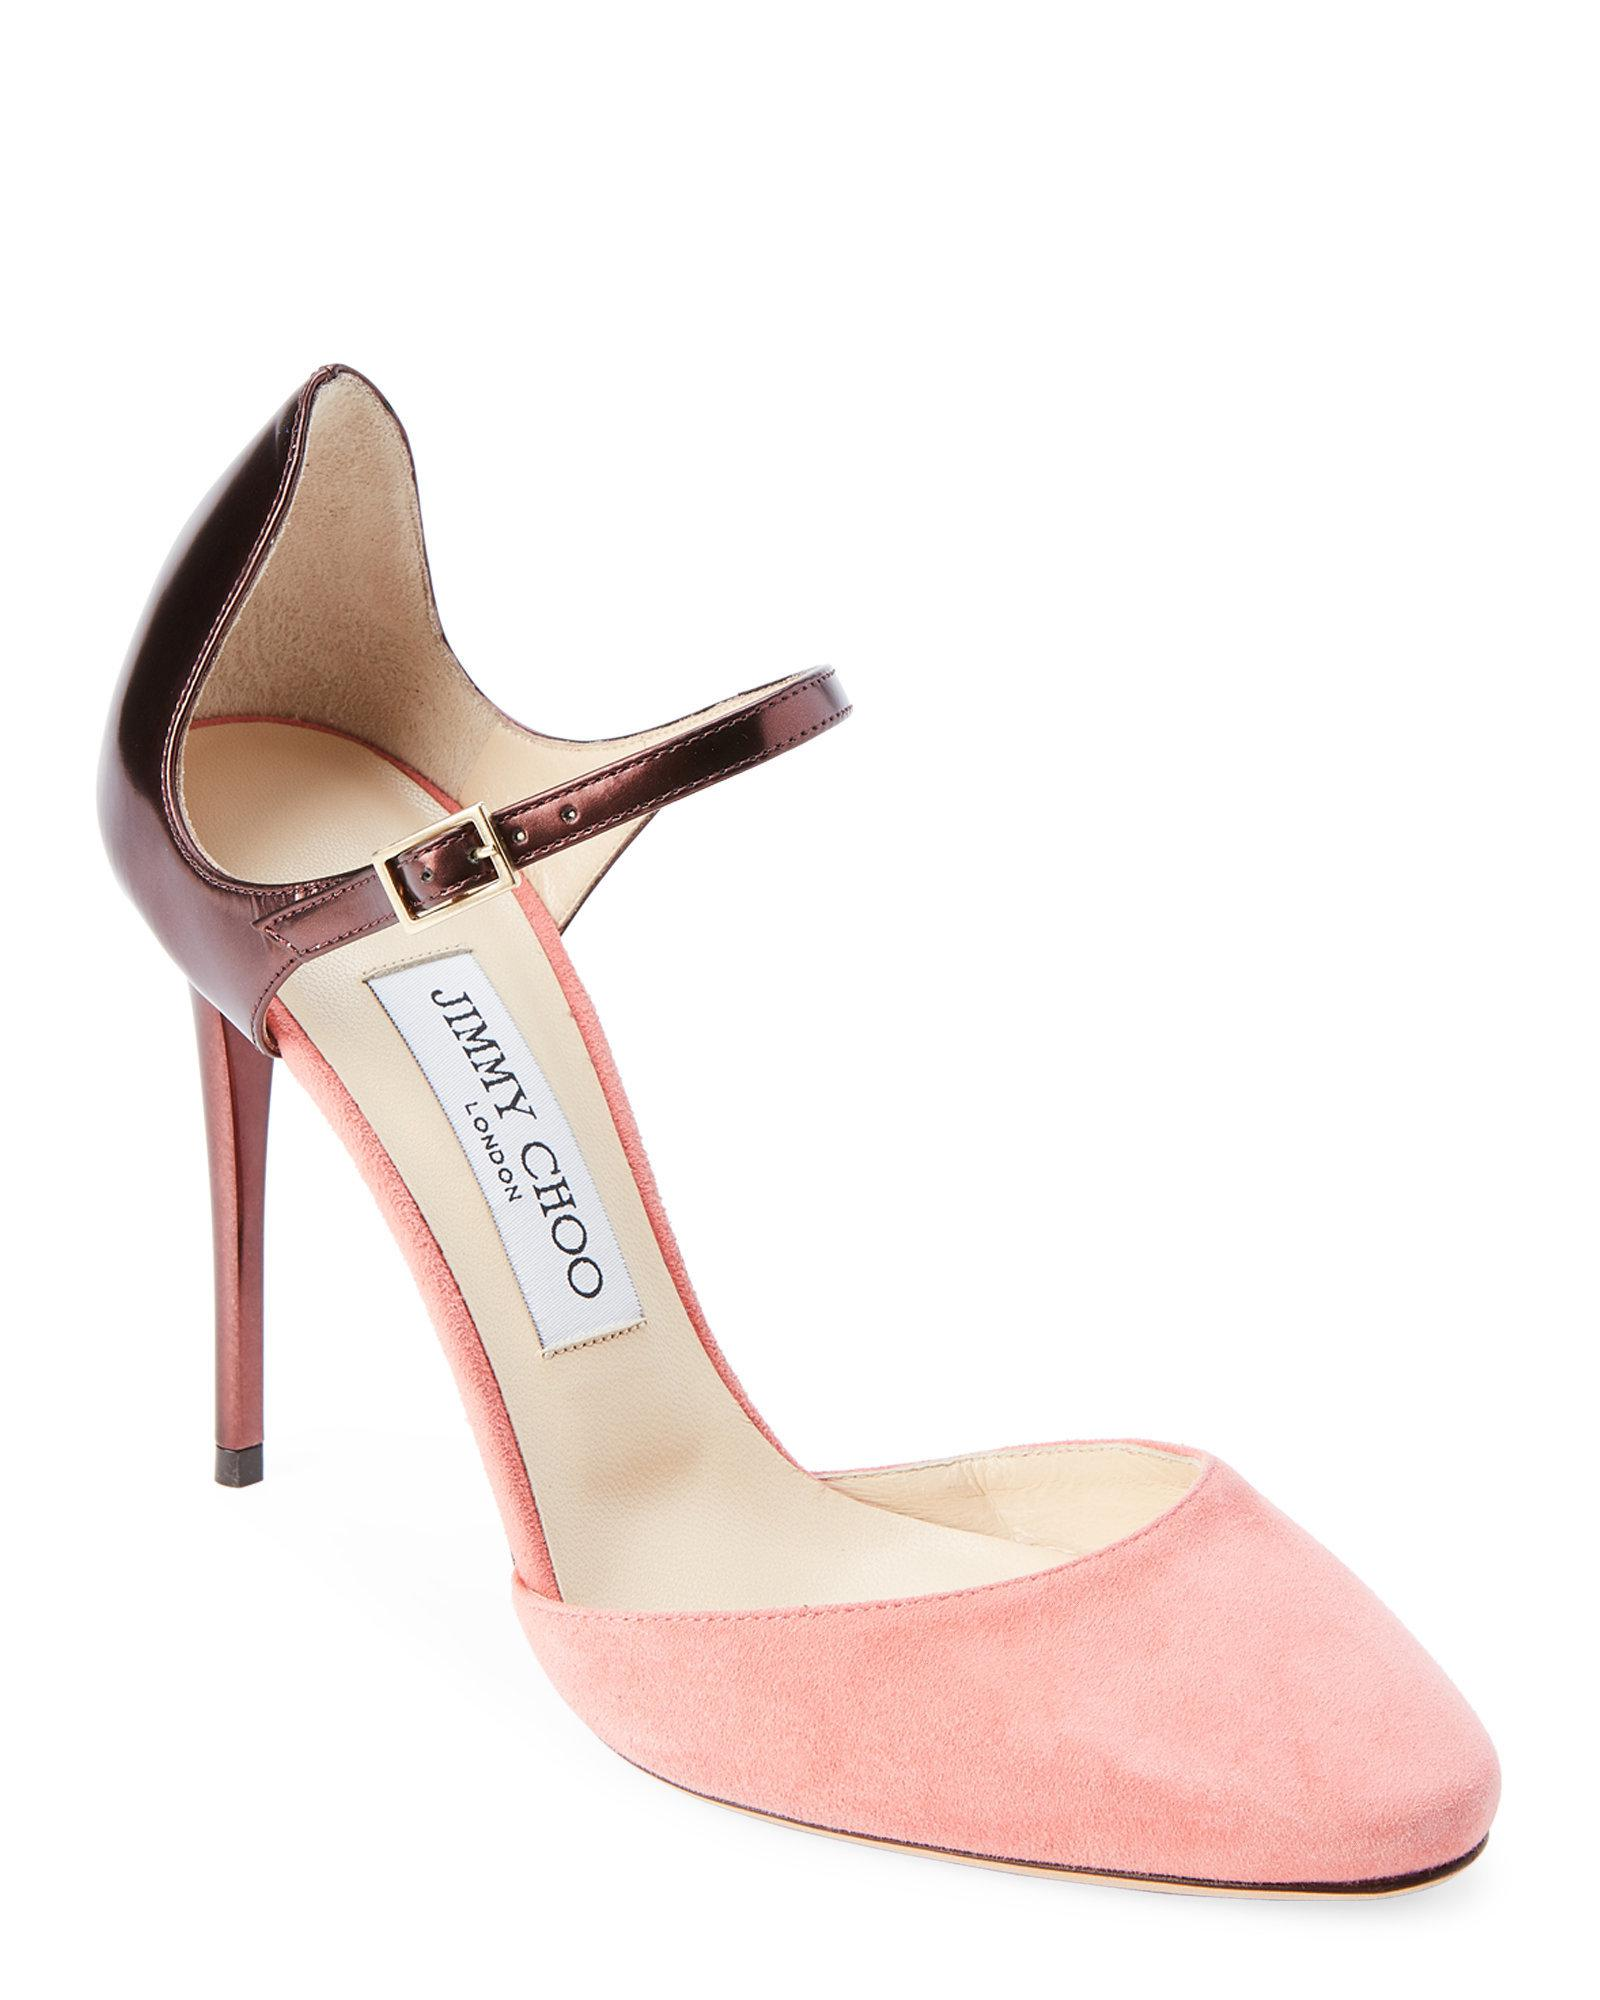 Lou Mid Pumps with Ankle Strap in Ballet Pink Shiny Smooth Leather Jimmy Choo London FqjPb